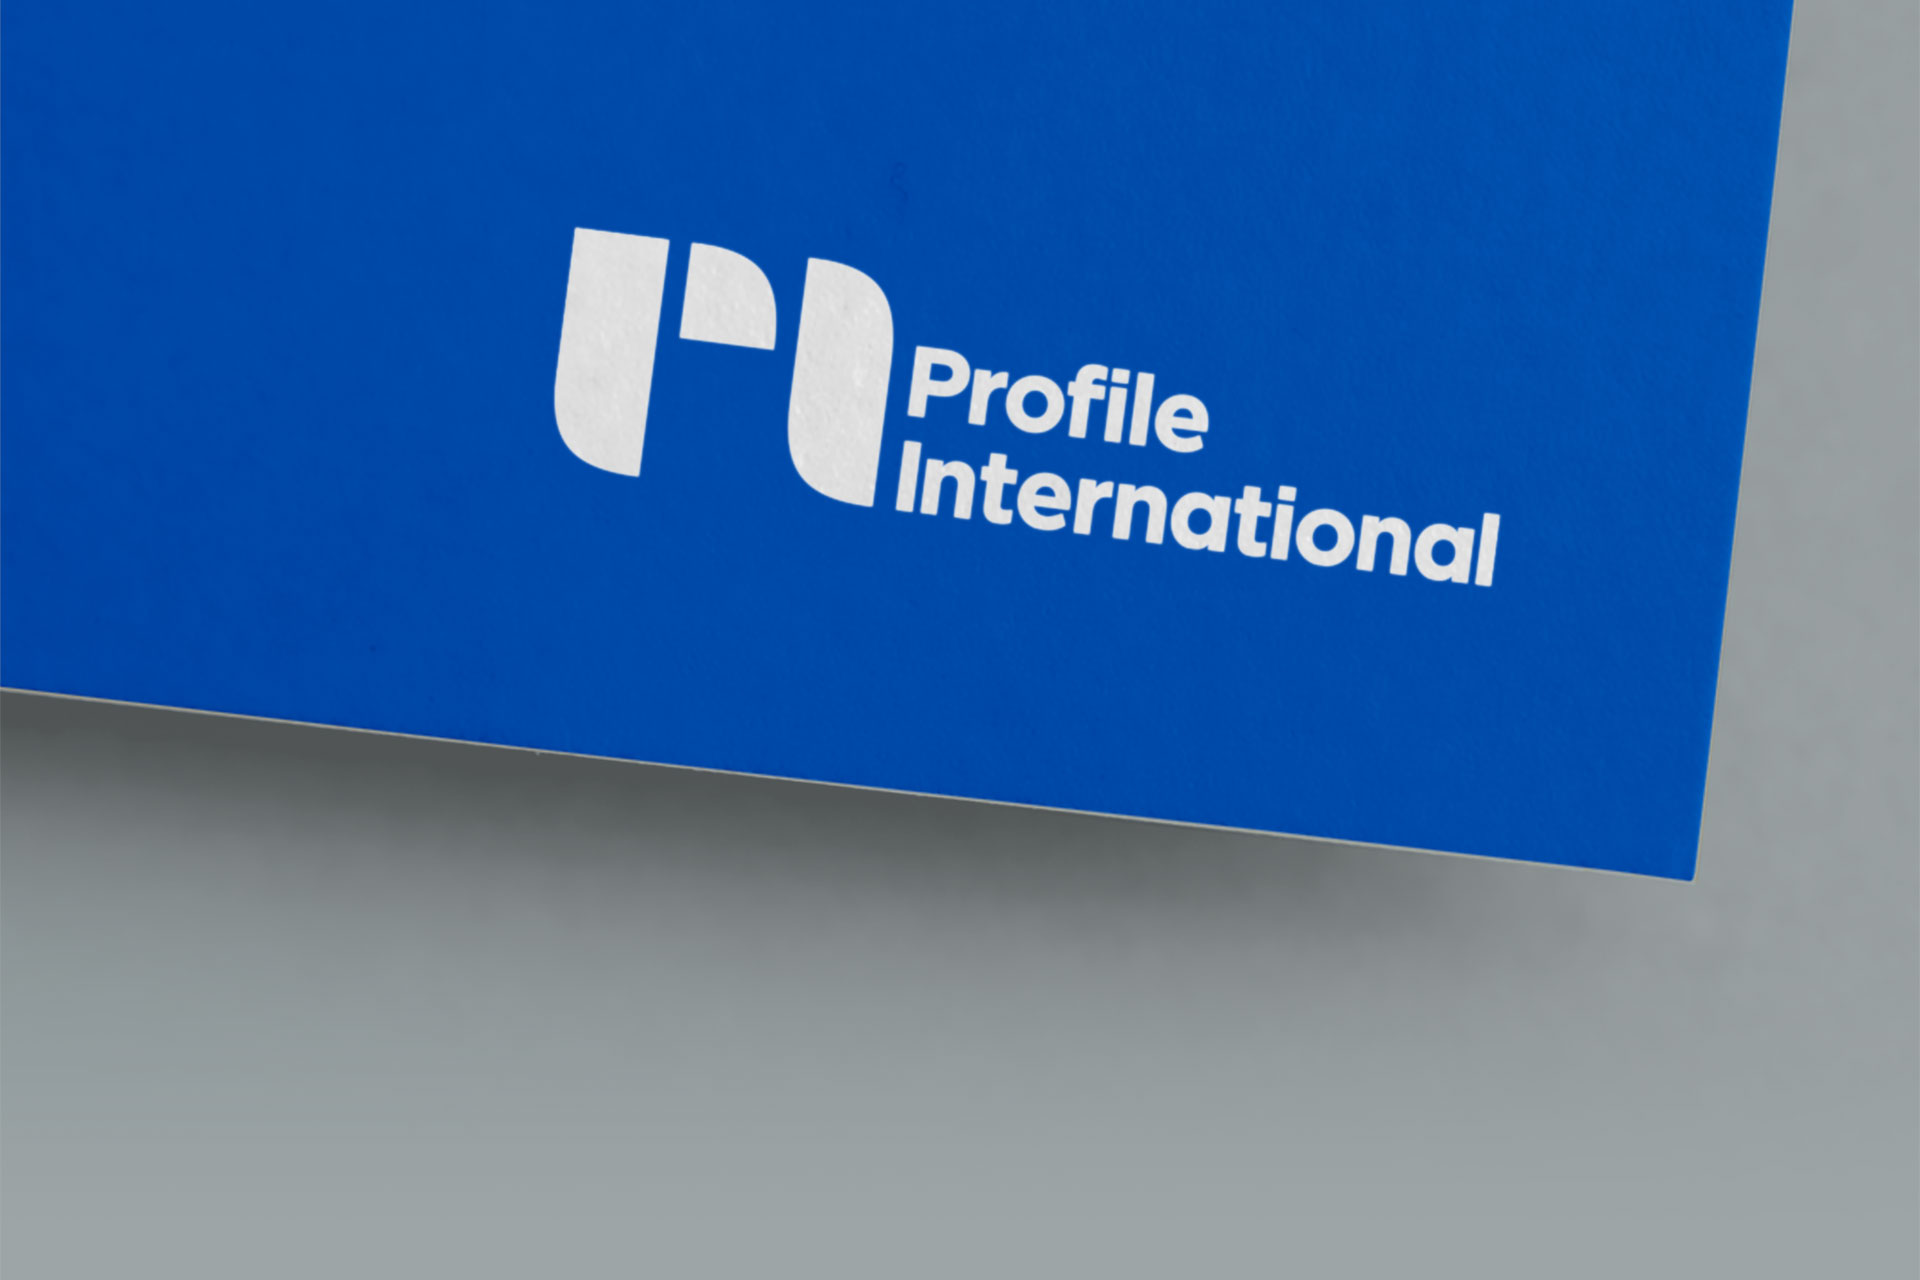 hh_profile-international_logo-detail